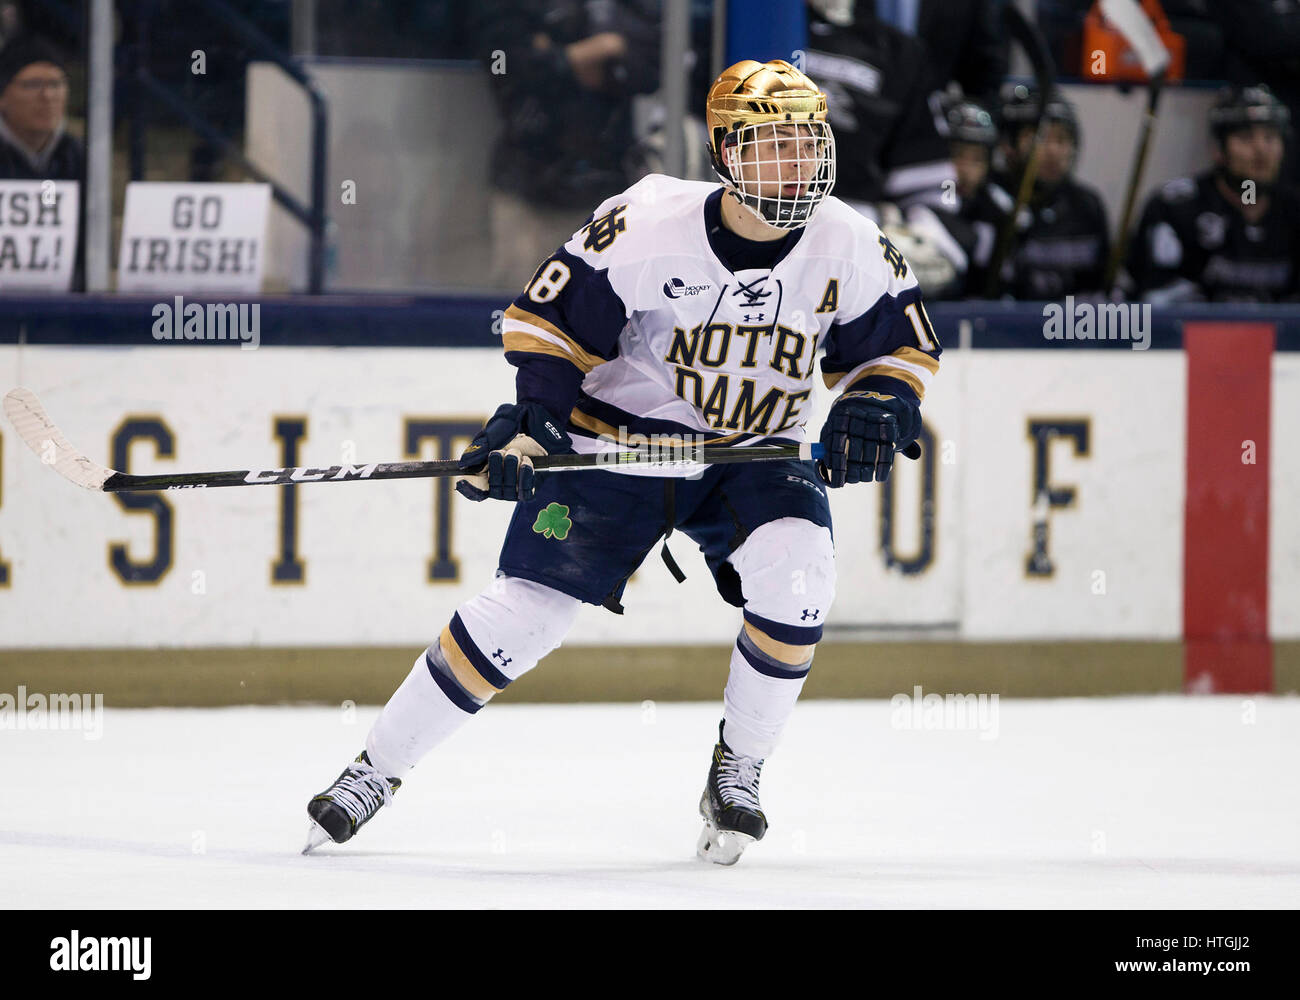 South Bend, Indiana, USA. 11th Mar, 2017. Notre Dame forward